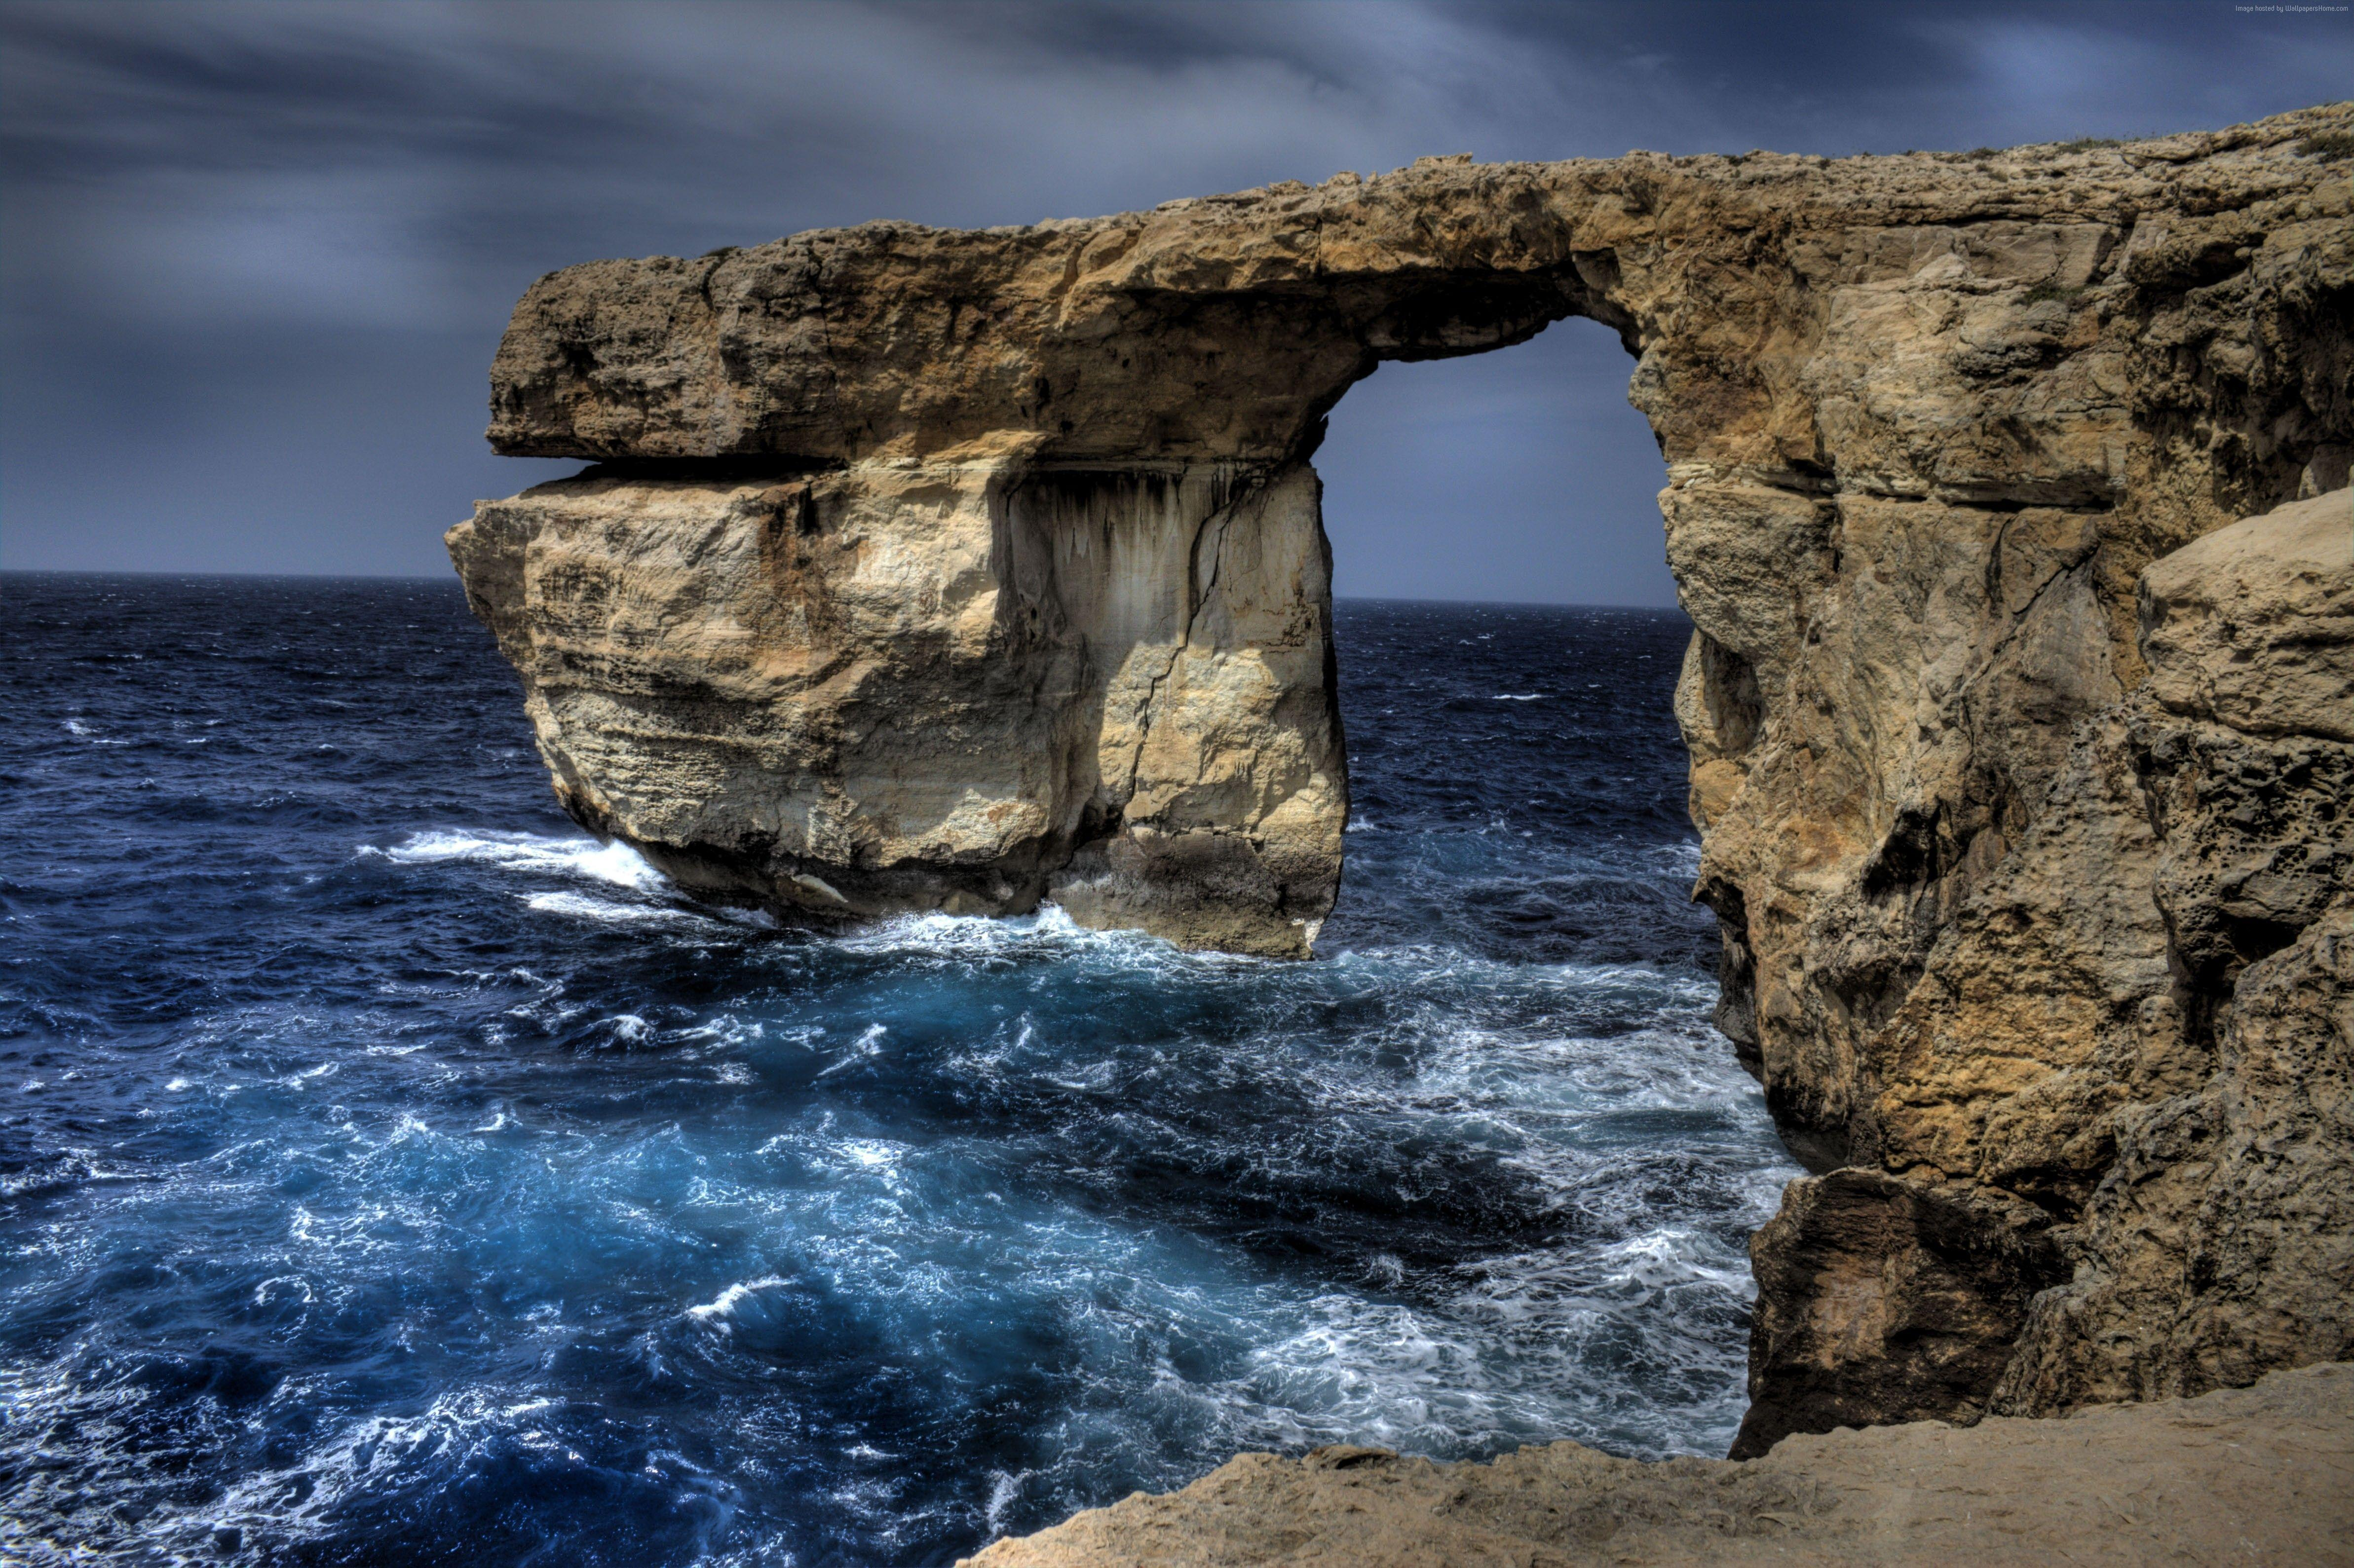 Wallpaper Malta, 5k, 4k wallpaper, Sea, ocean, rocks, Nature #4391